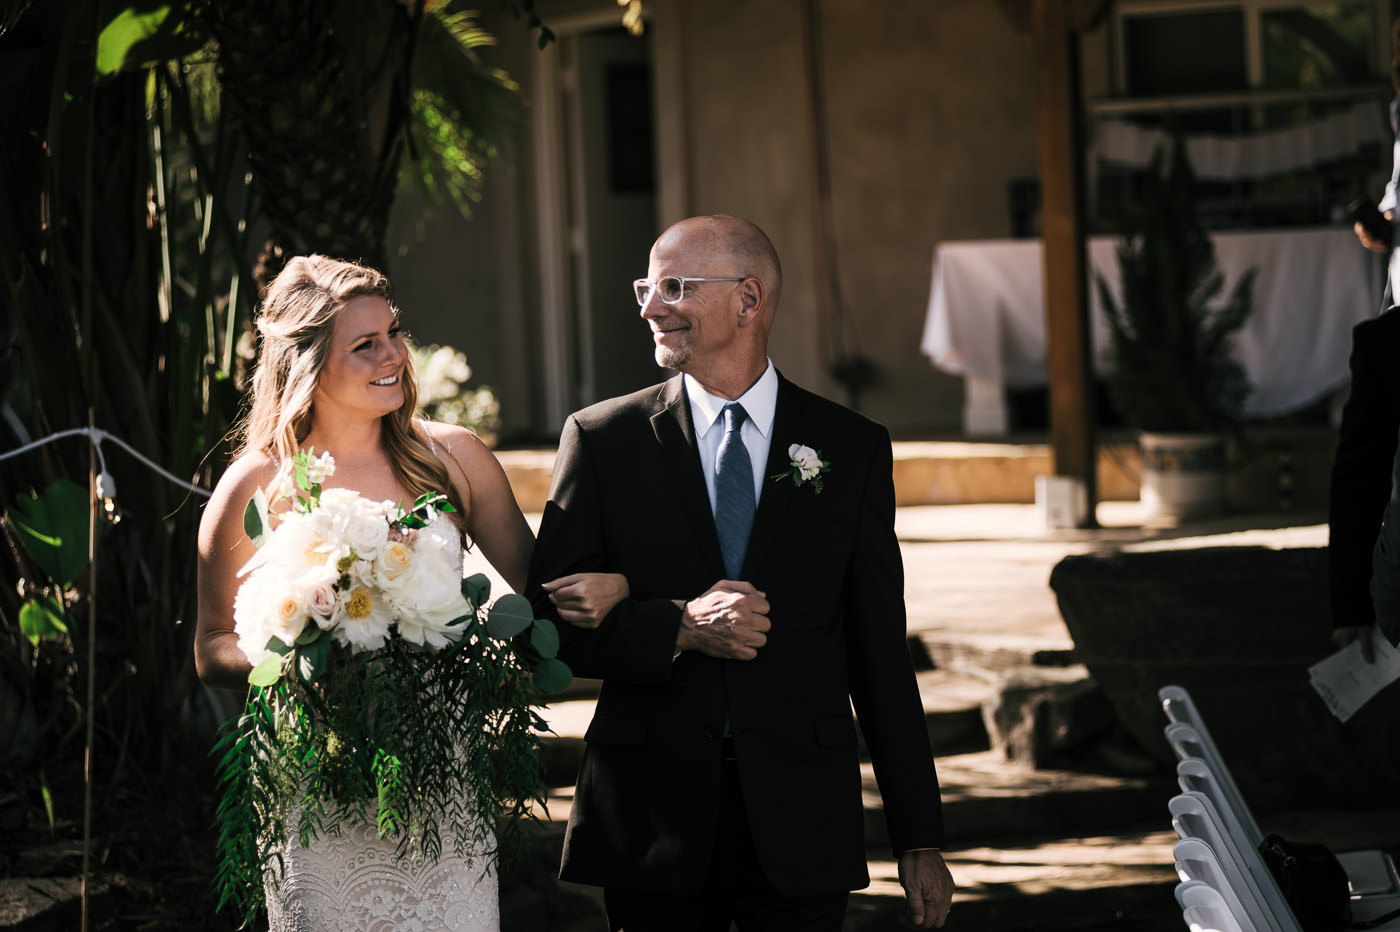 Father walks the bride down the aisle with smiles all around. A touching moment captured by their Temecula wedding Photographer